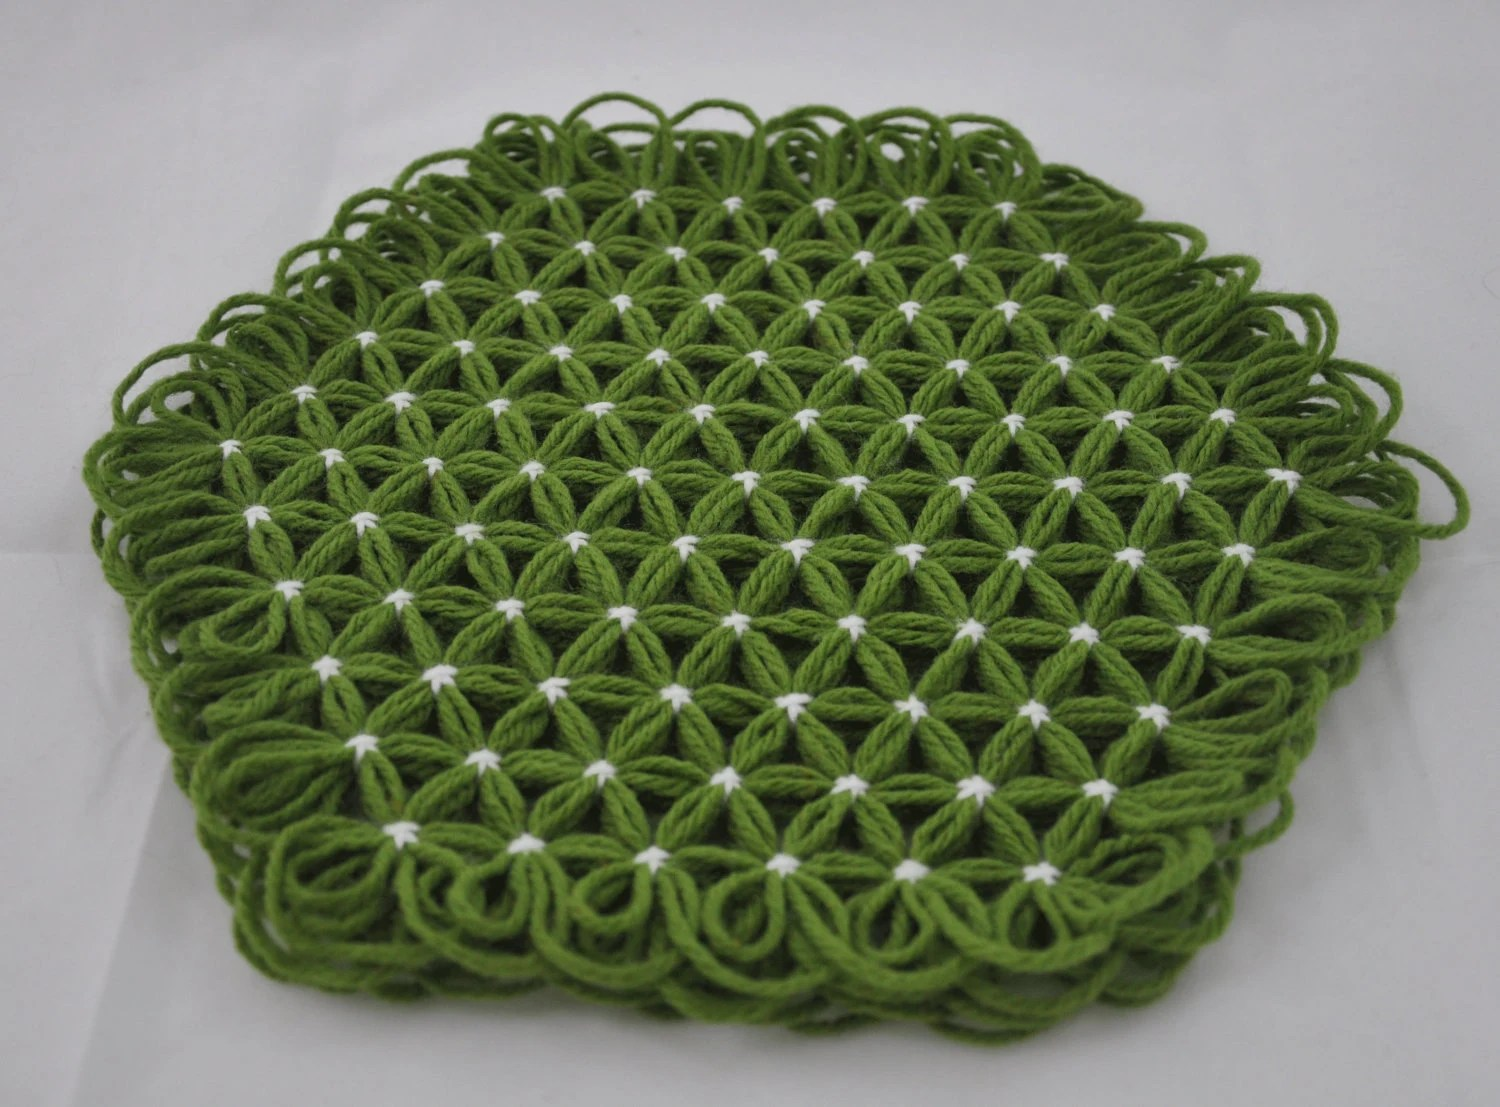 Small Trivet in 4 Layers of Lime Green Yarn with White Ties - Summer Margarita Colors